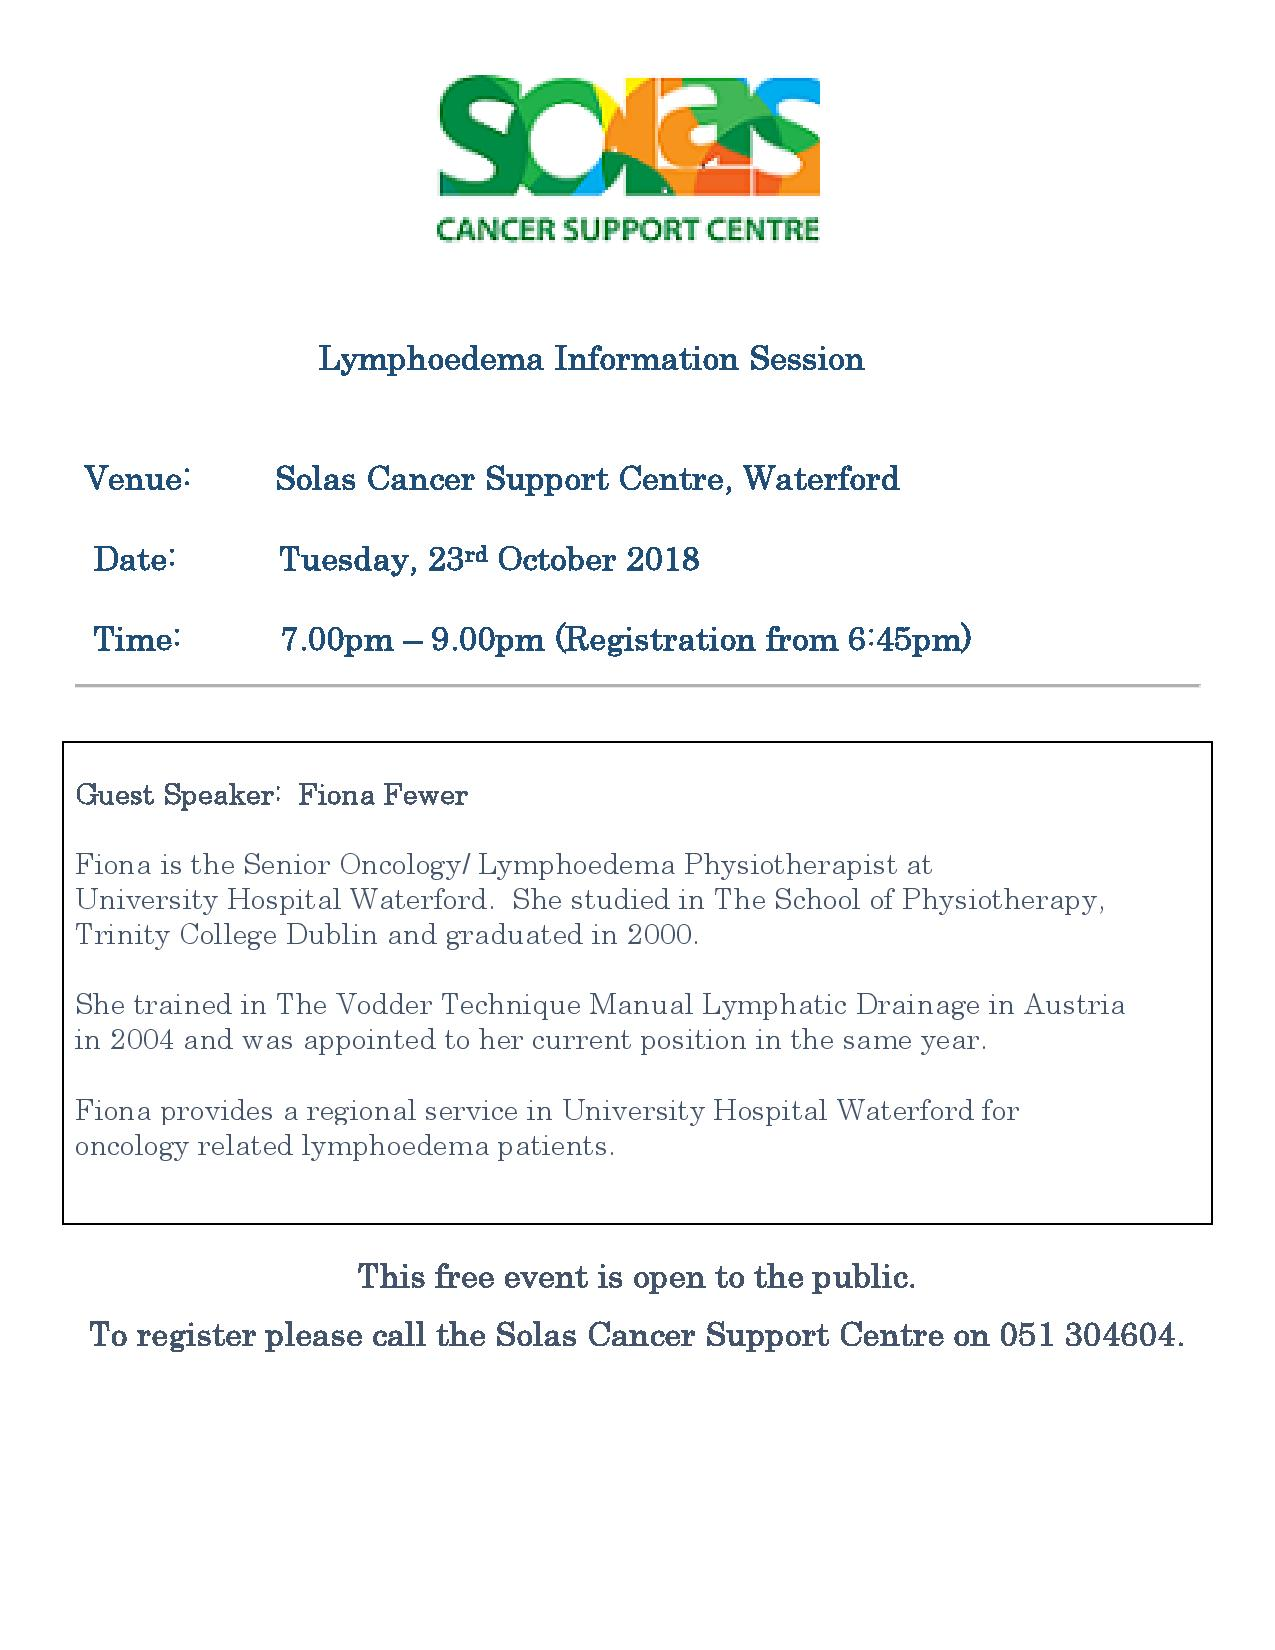 Lymphoedema Information Session - 23rd October 2018-page-001